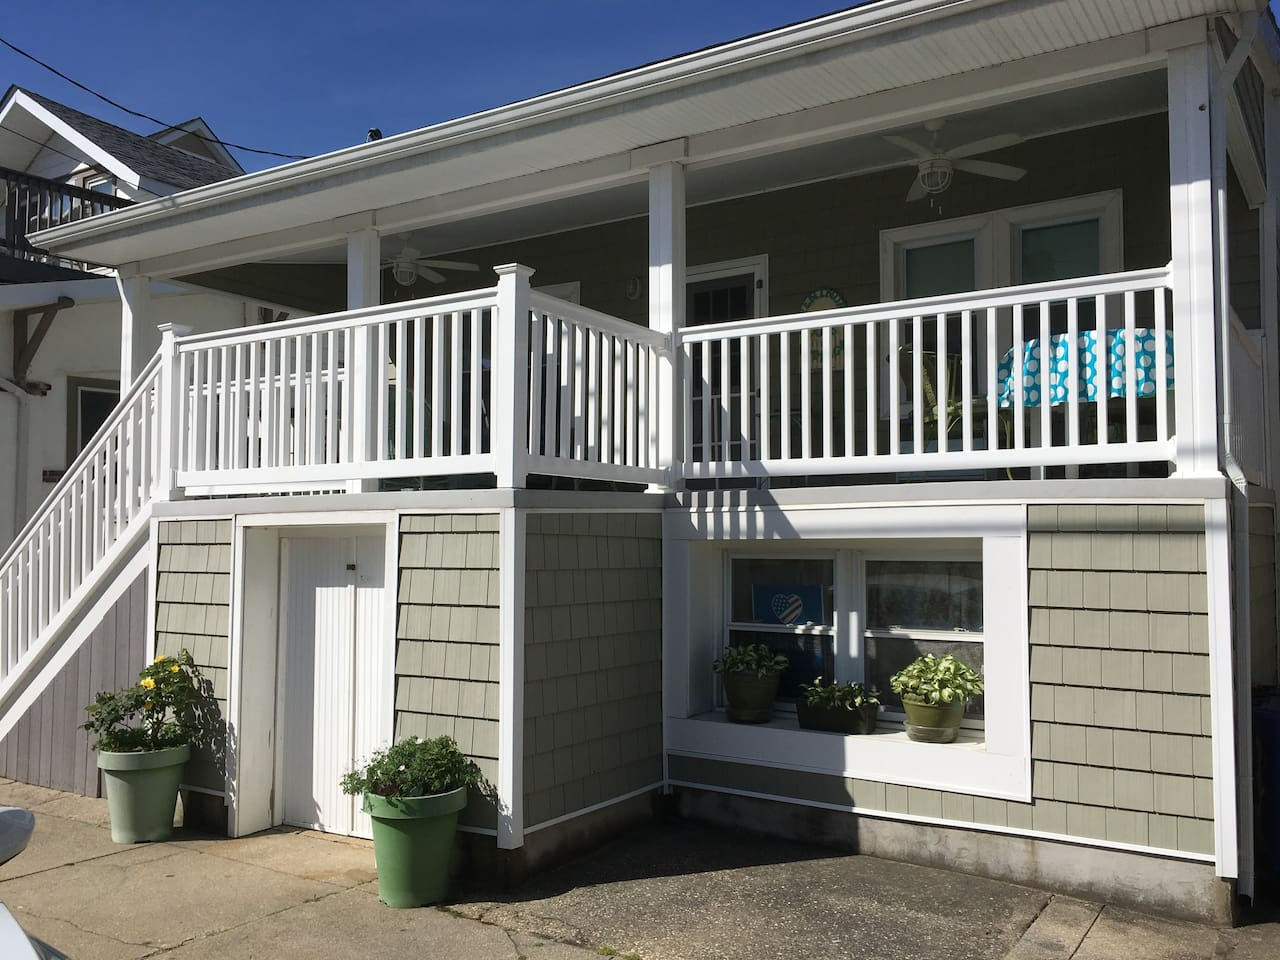 Welcome to Ventnor Happy Ours Cottage.  Our spacious porch is the favorite place for our guests to relax.  Come on in...